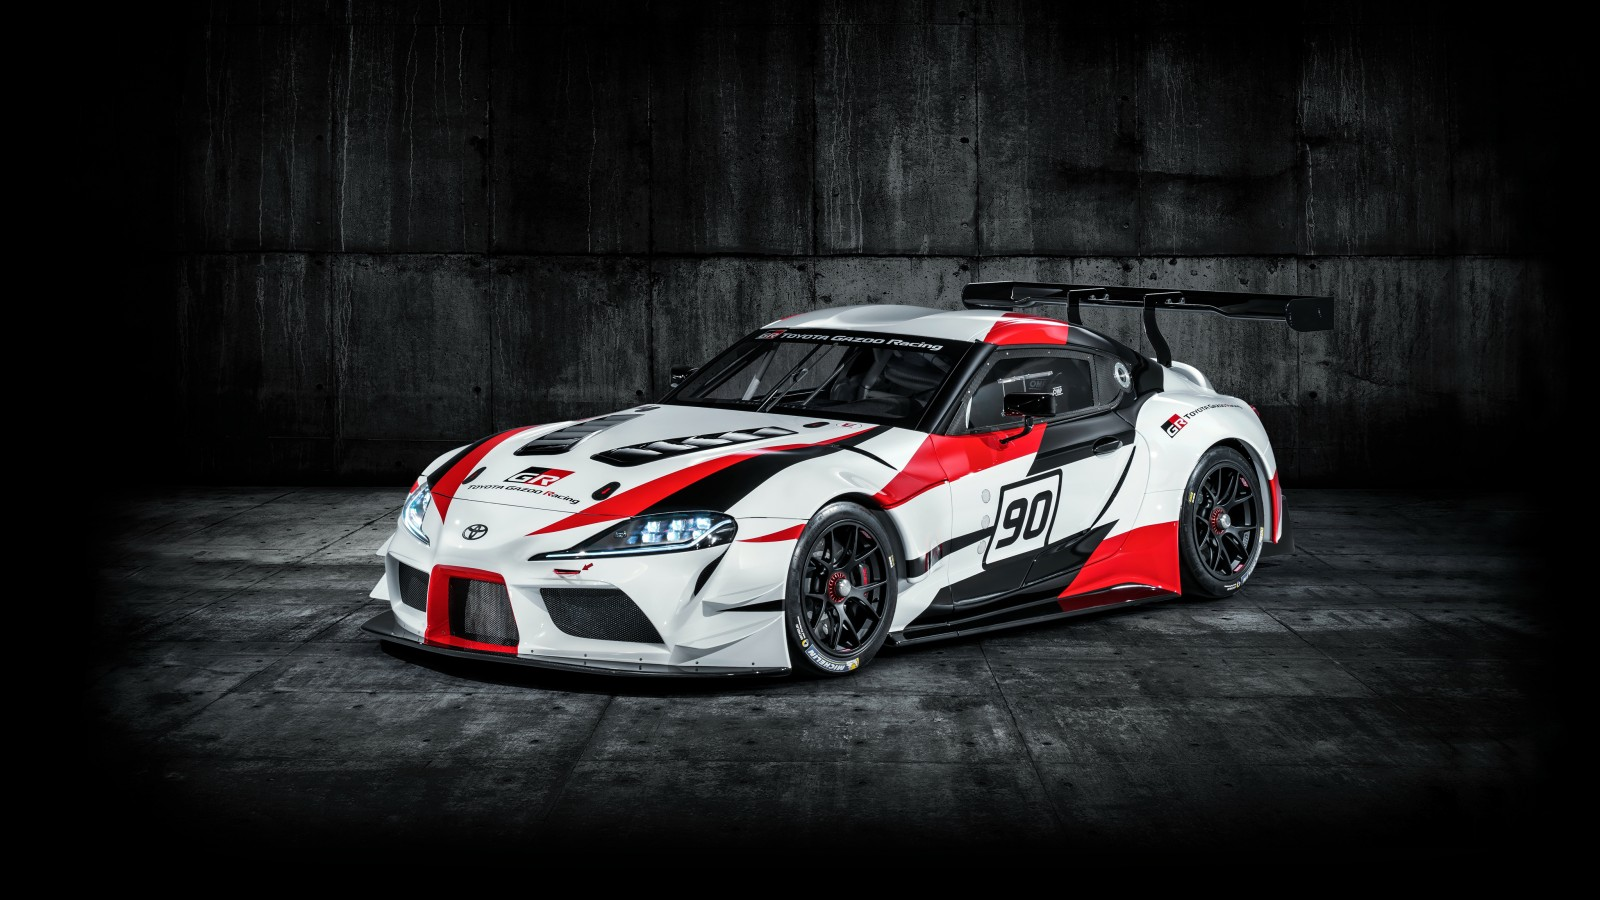 Hd Car Wallpapers For Android Tablets 2018 Toyota Gr Supra Racing Concept 4k 3 Wallpaper Hd